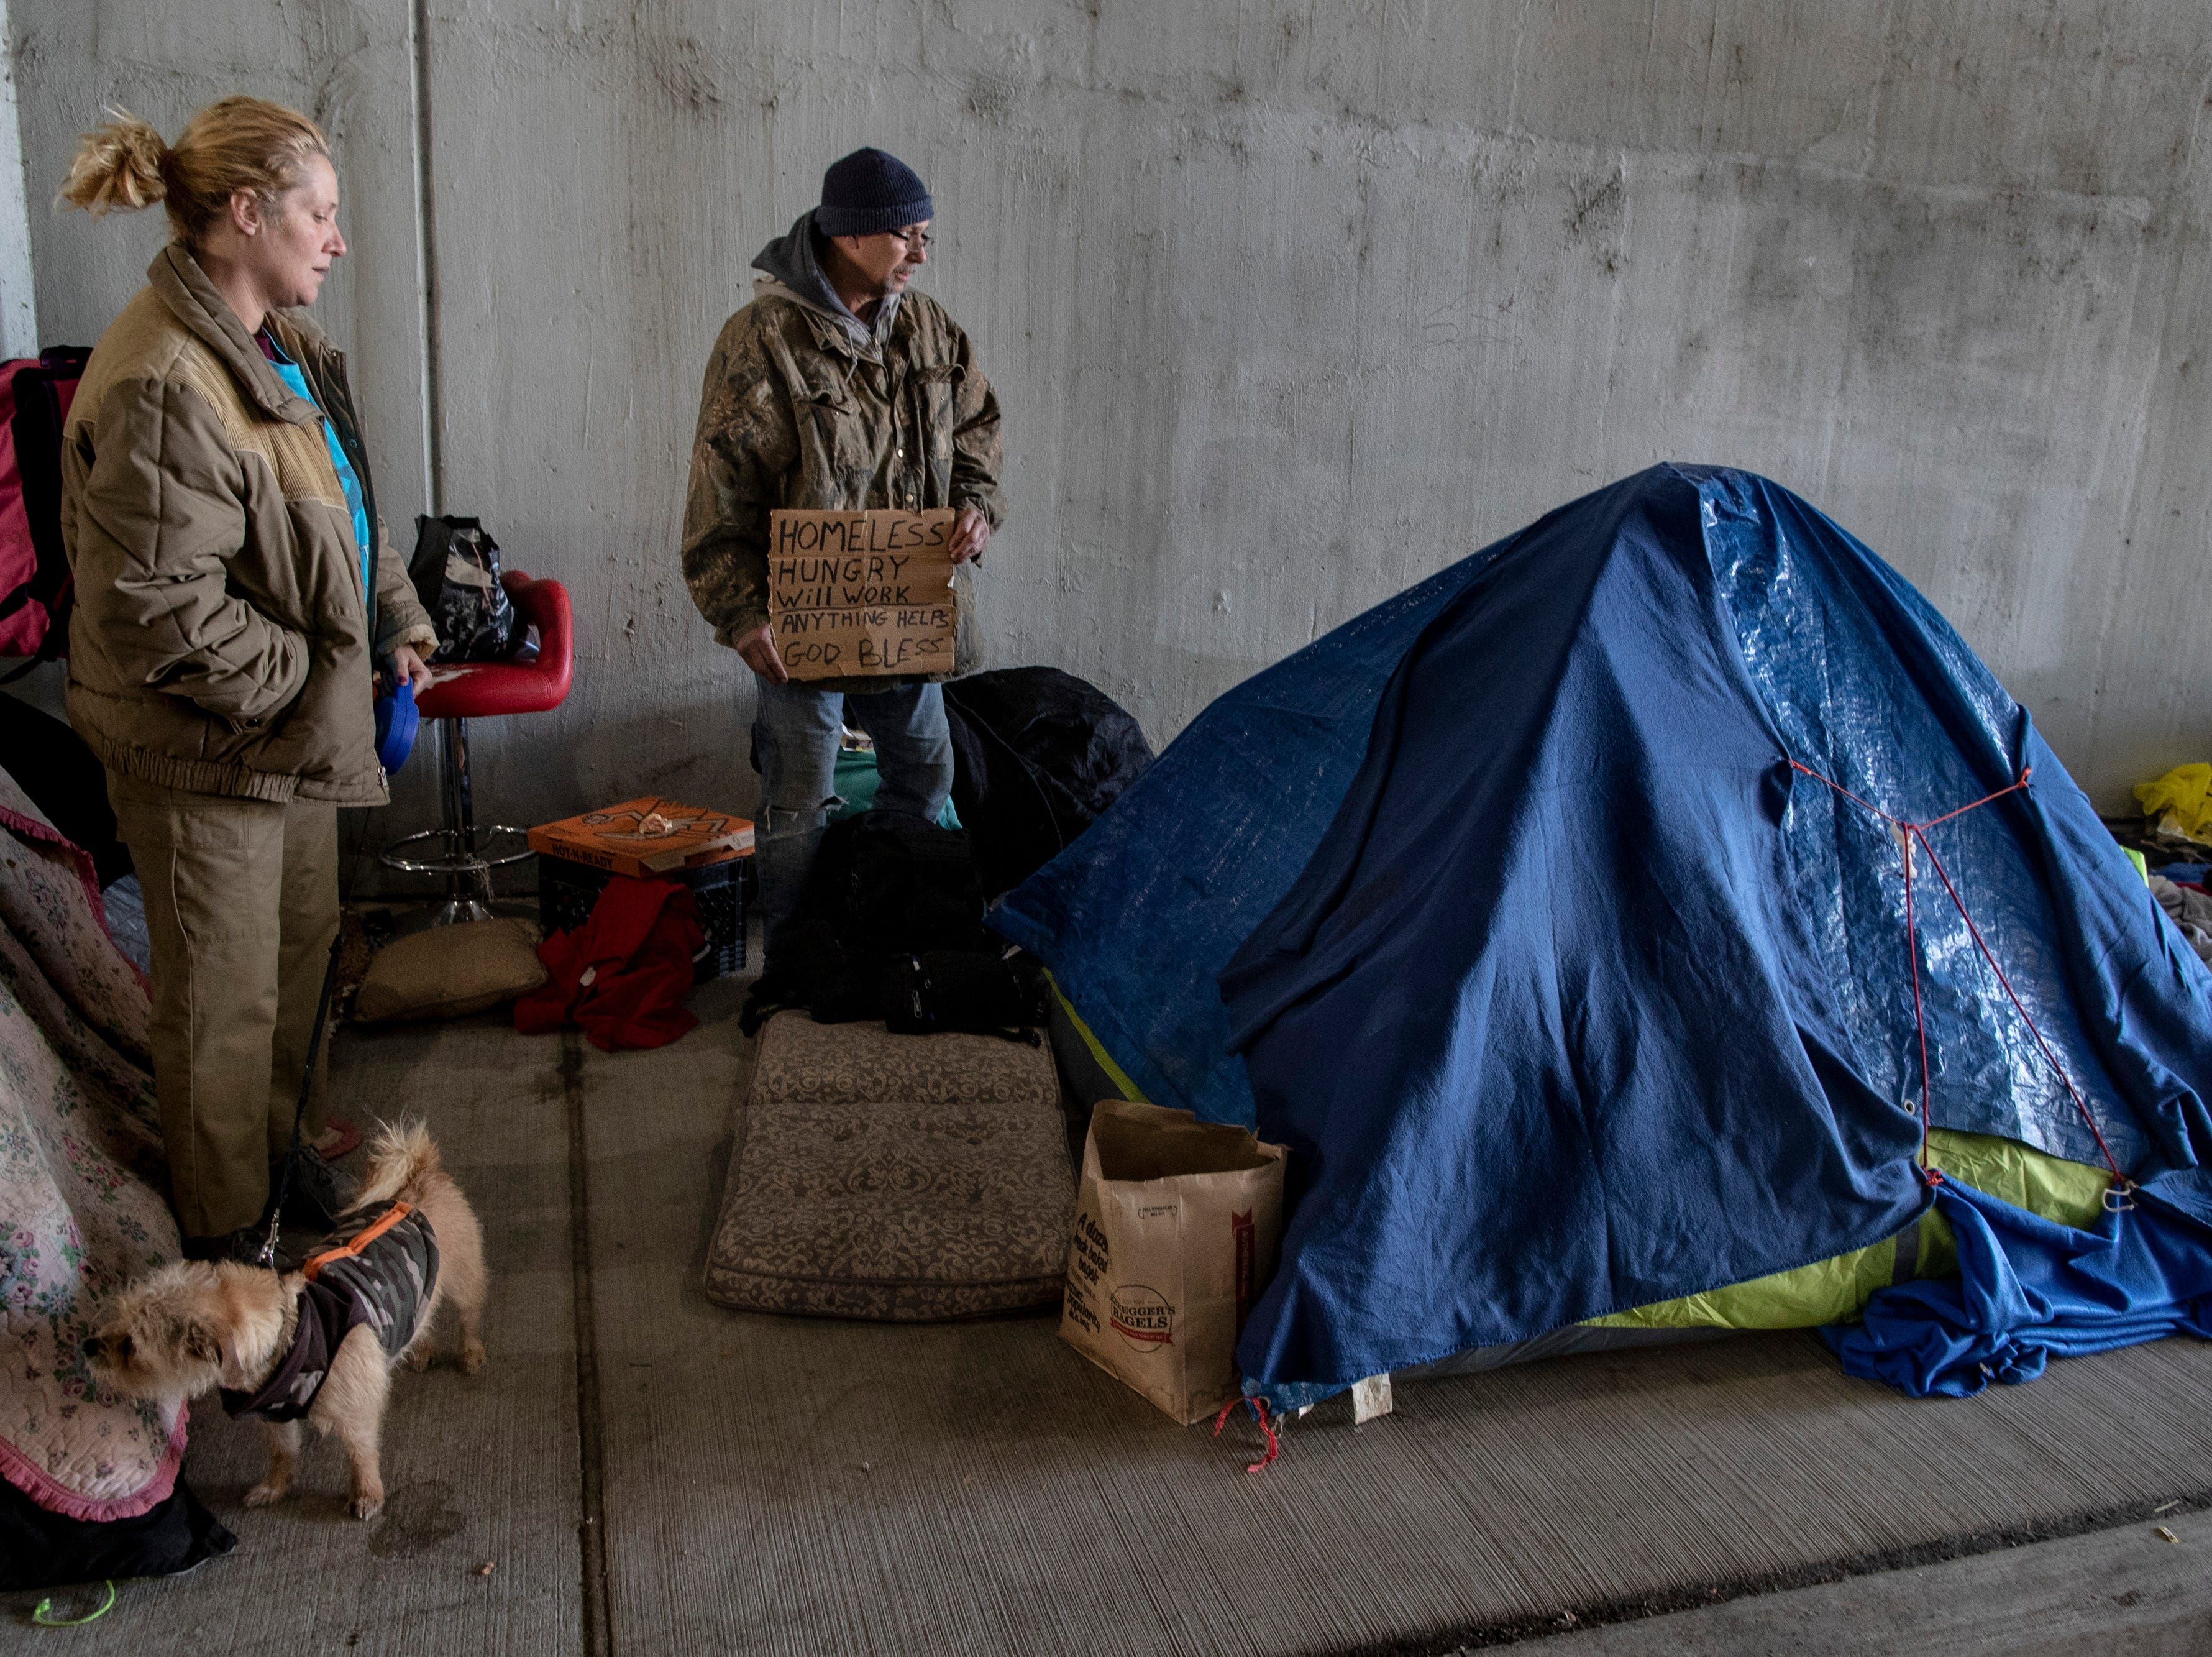 """Dani Crip, left, and her partner Jeff Weston stand near their tents at the homeless camp area under the bypasses along East Jefferson Street and Jackson Street in downtown Louisville. The couple has been homeless with their son for two years. """"I came here thinking we'd make a killing, but instead we made a lot of mistakes,"""" Weston said. Weston was a commercial painter, but suffers from the late stages of sclerosis. March 18, 2019"""